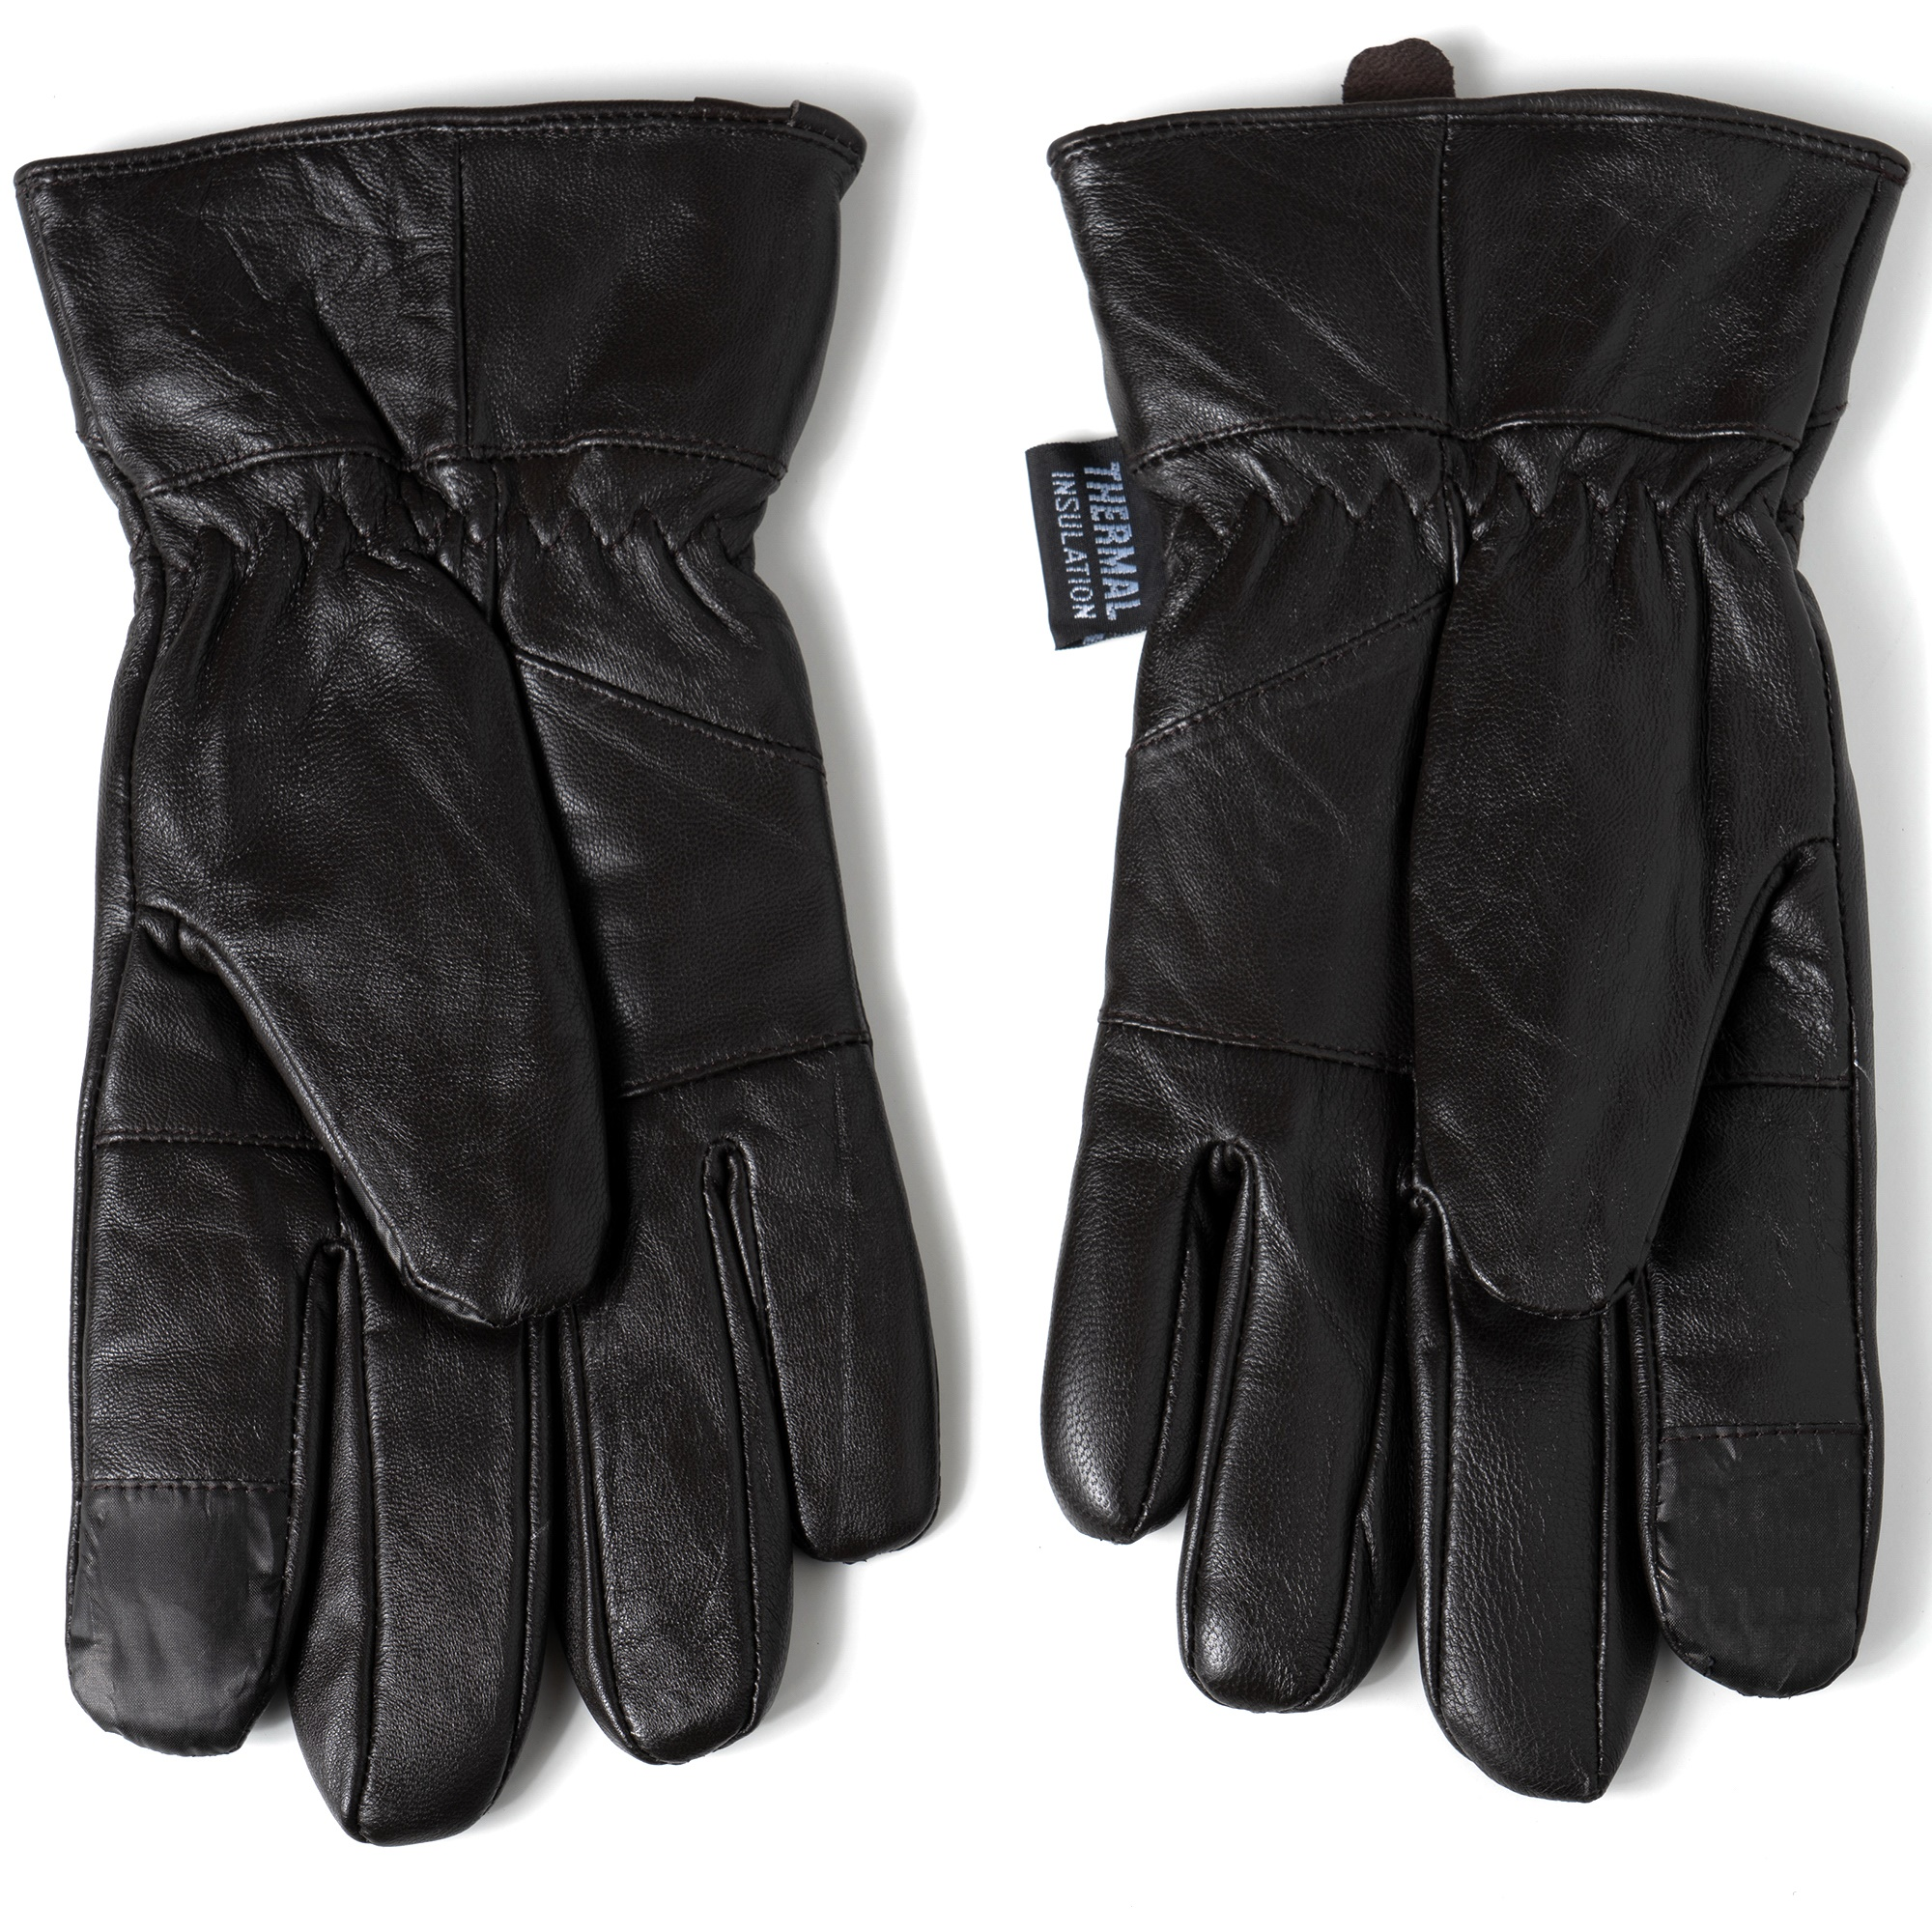 Alpine-Swiss-Mens-Touch-Screen-Gloves-Leather-Thermal-Lined-Phone-Texting-Gloves thumbnail 25